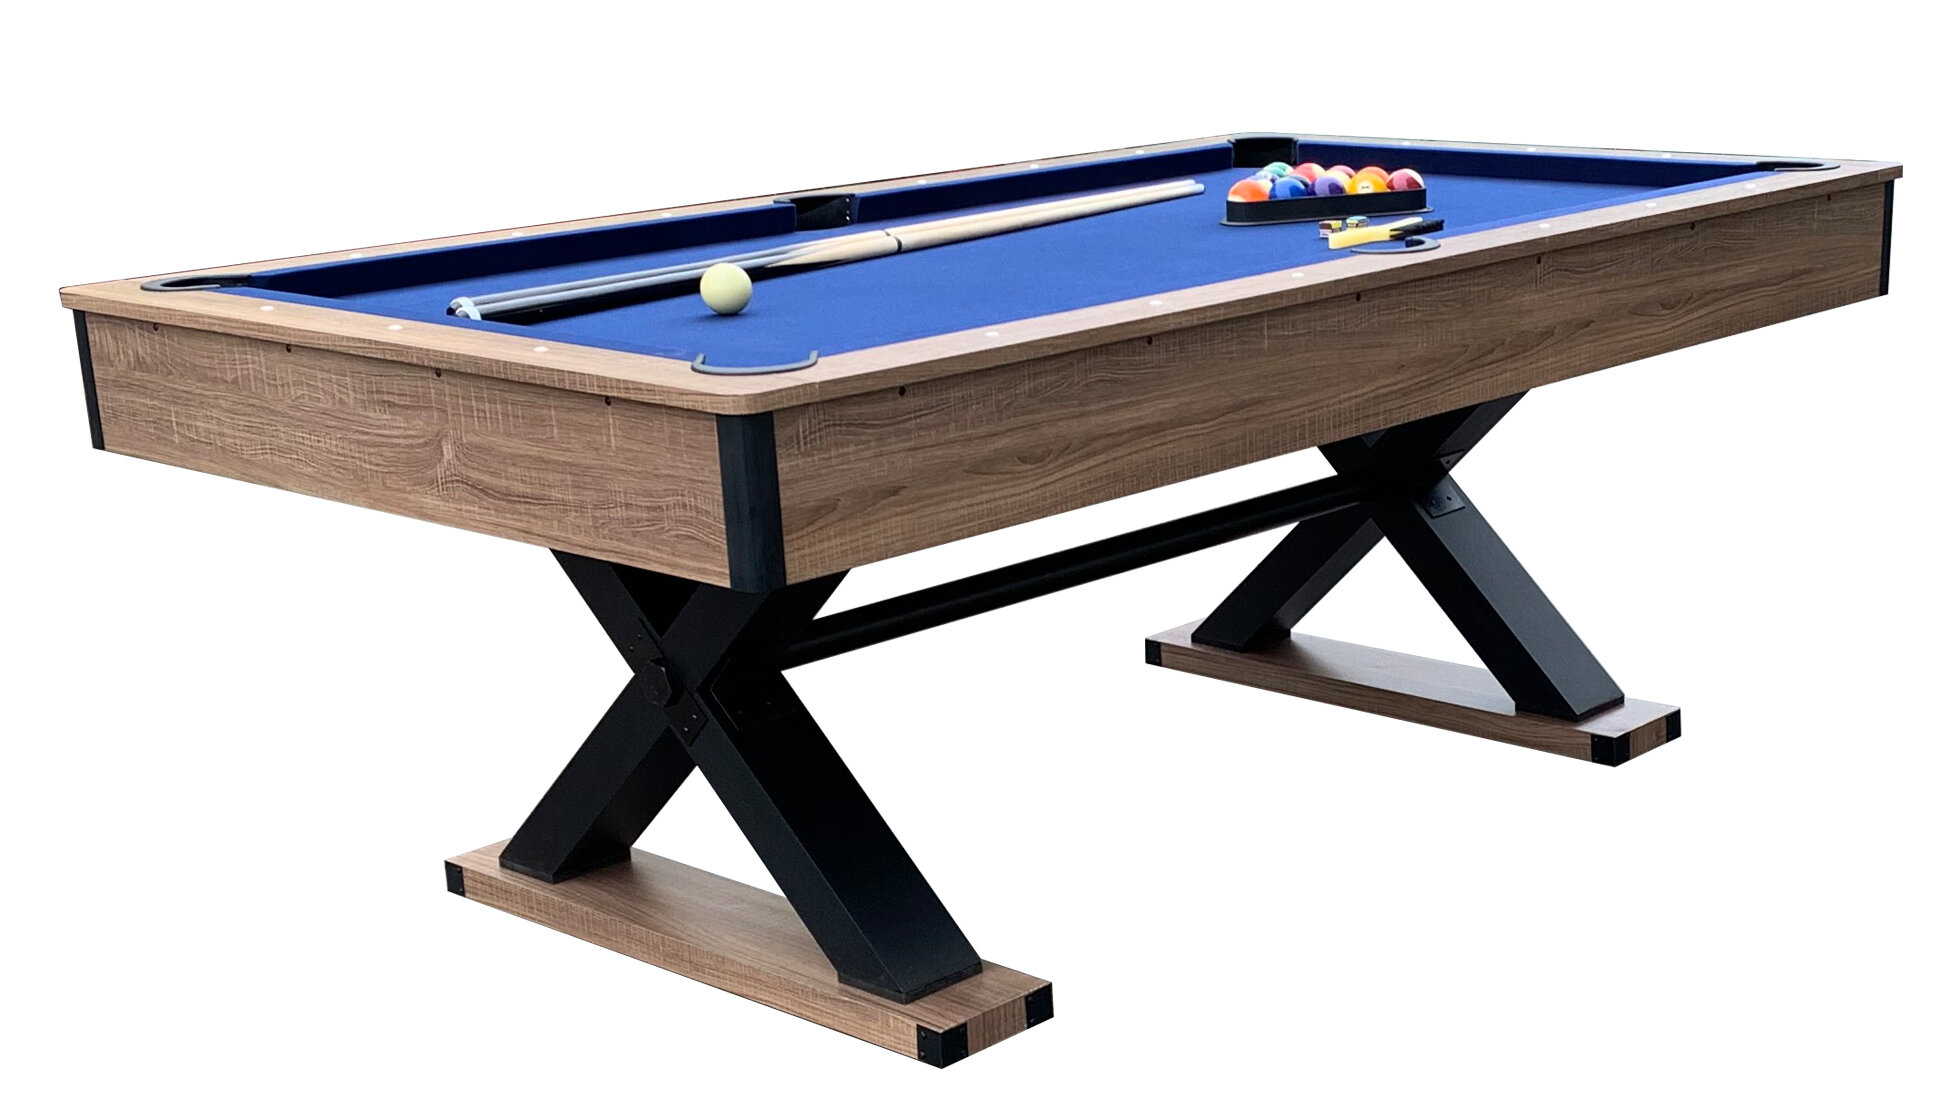 Hathaway Games Excalibur 7' Pool Table & Reviews | Wayfair